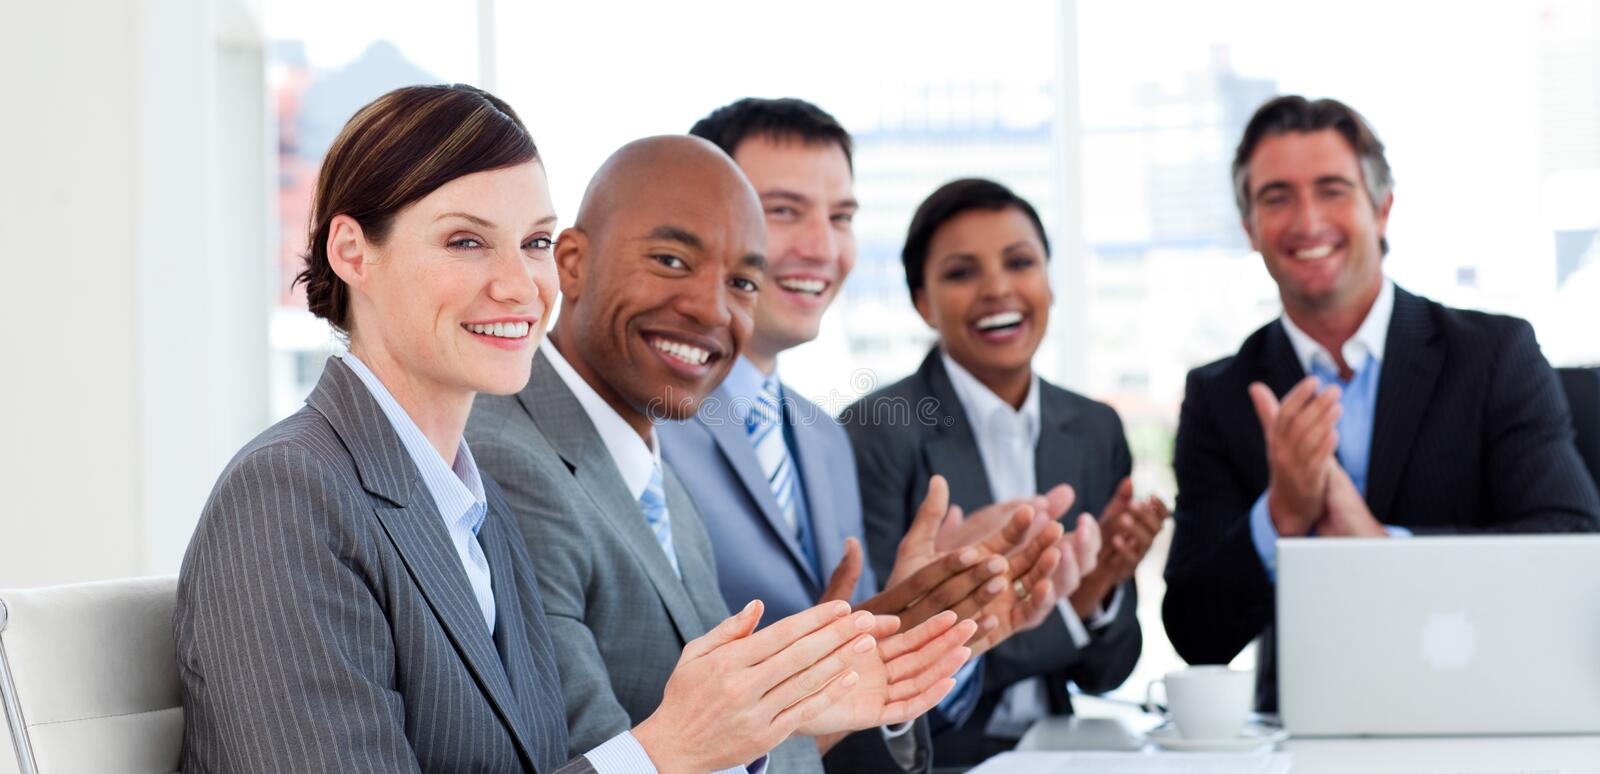 Download International Business Team Clapping Stock Image - Image: 12025395